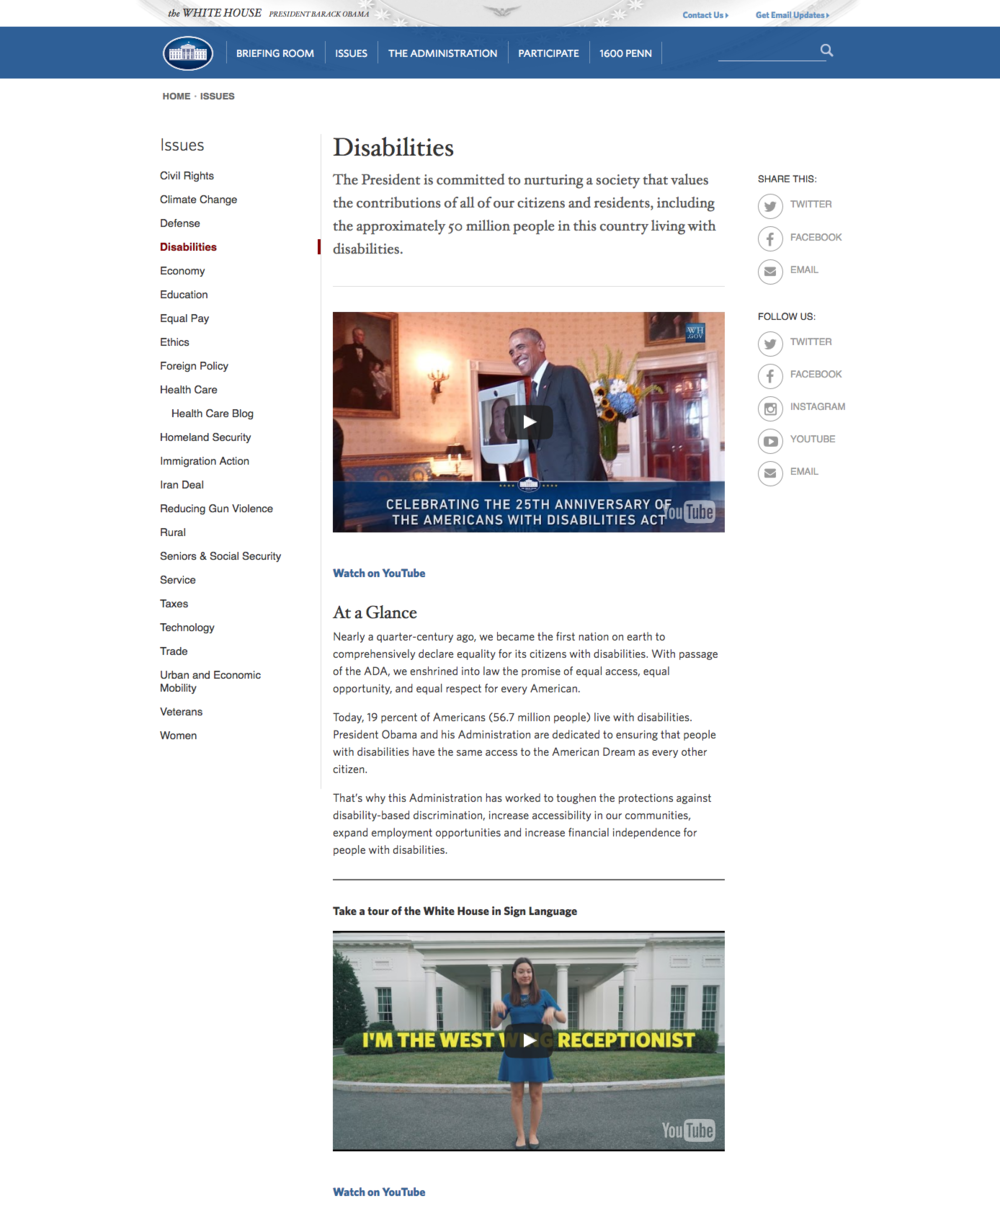 Based on research that most users come to this page with the goal of learning about President Obama's record on disability rights, I redesigned this webpage to include more introductory content on President Obama's record at the forefront of the page.